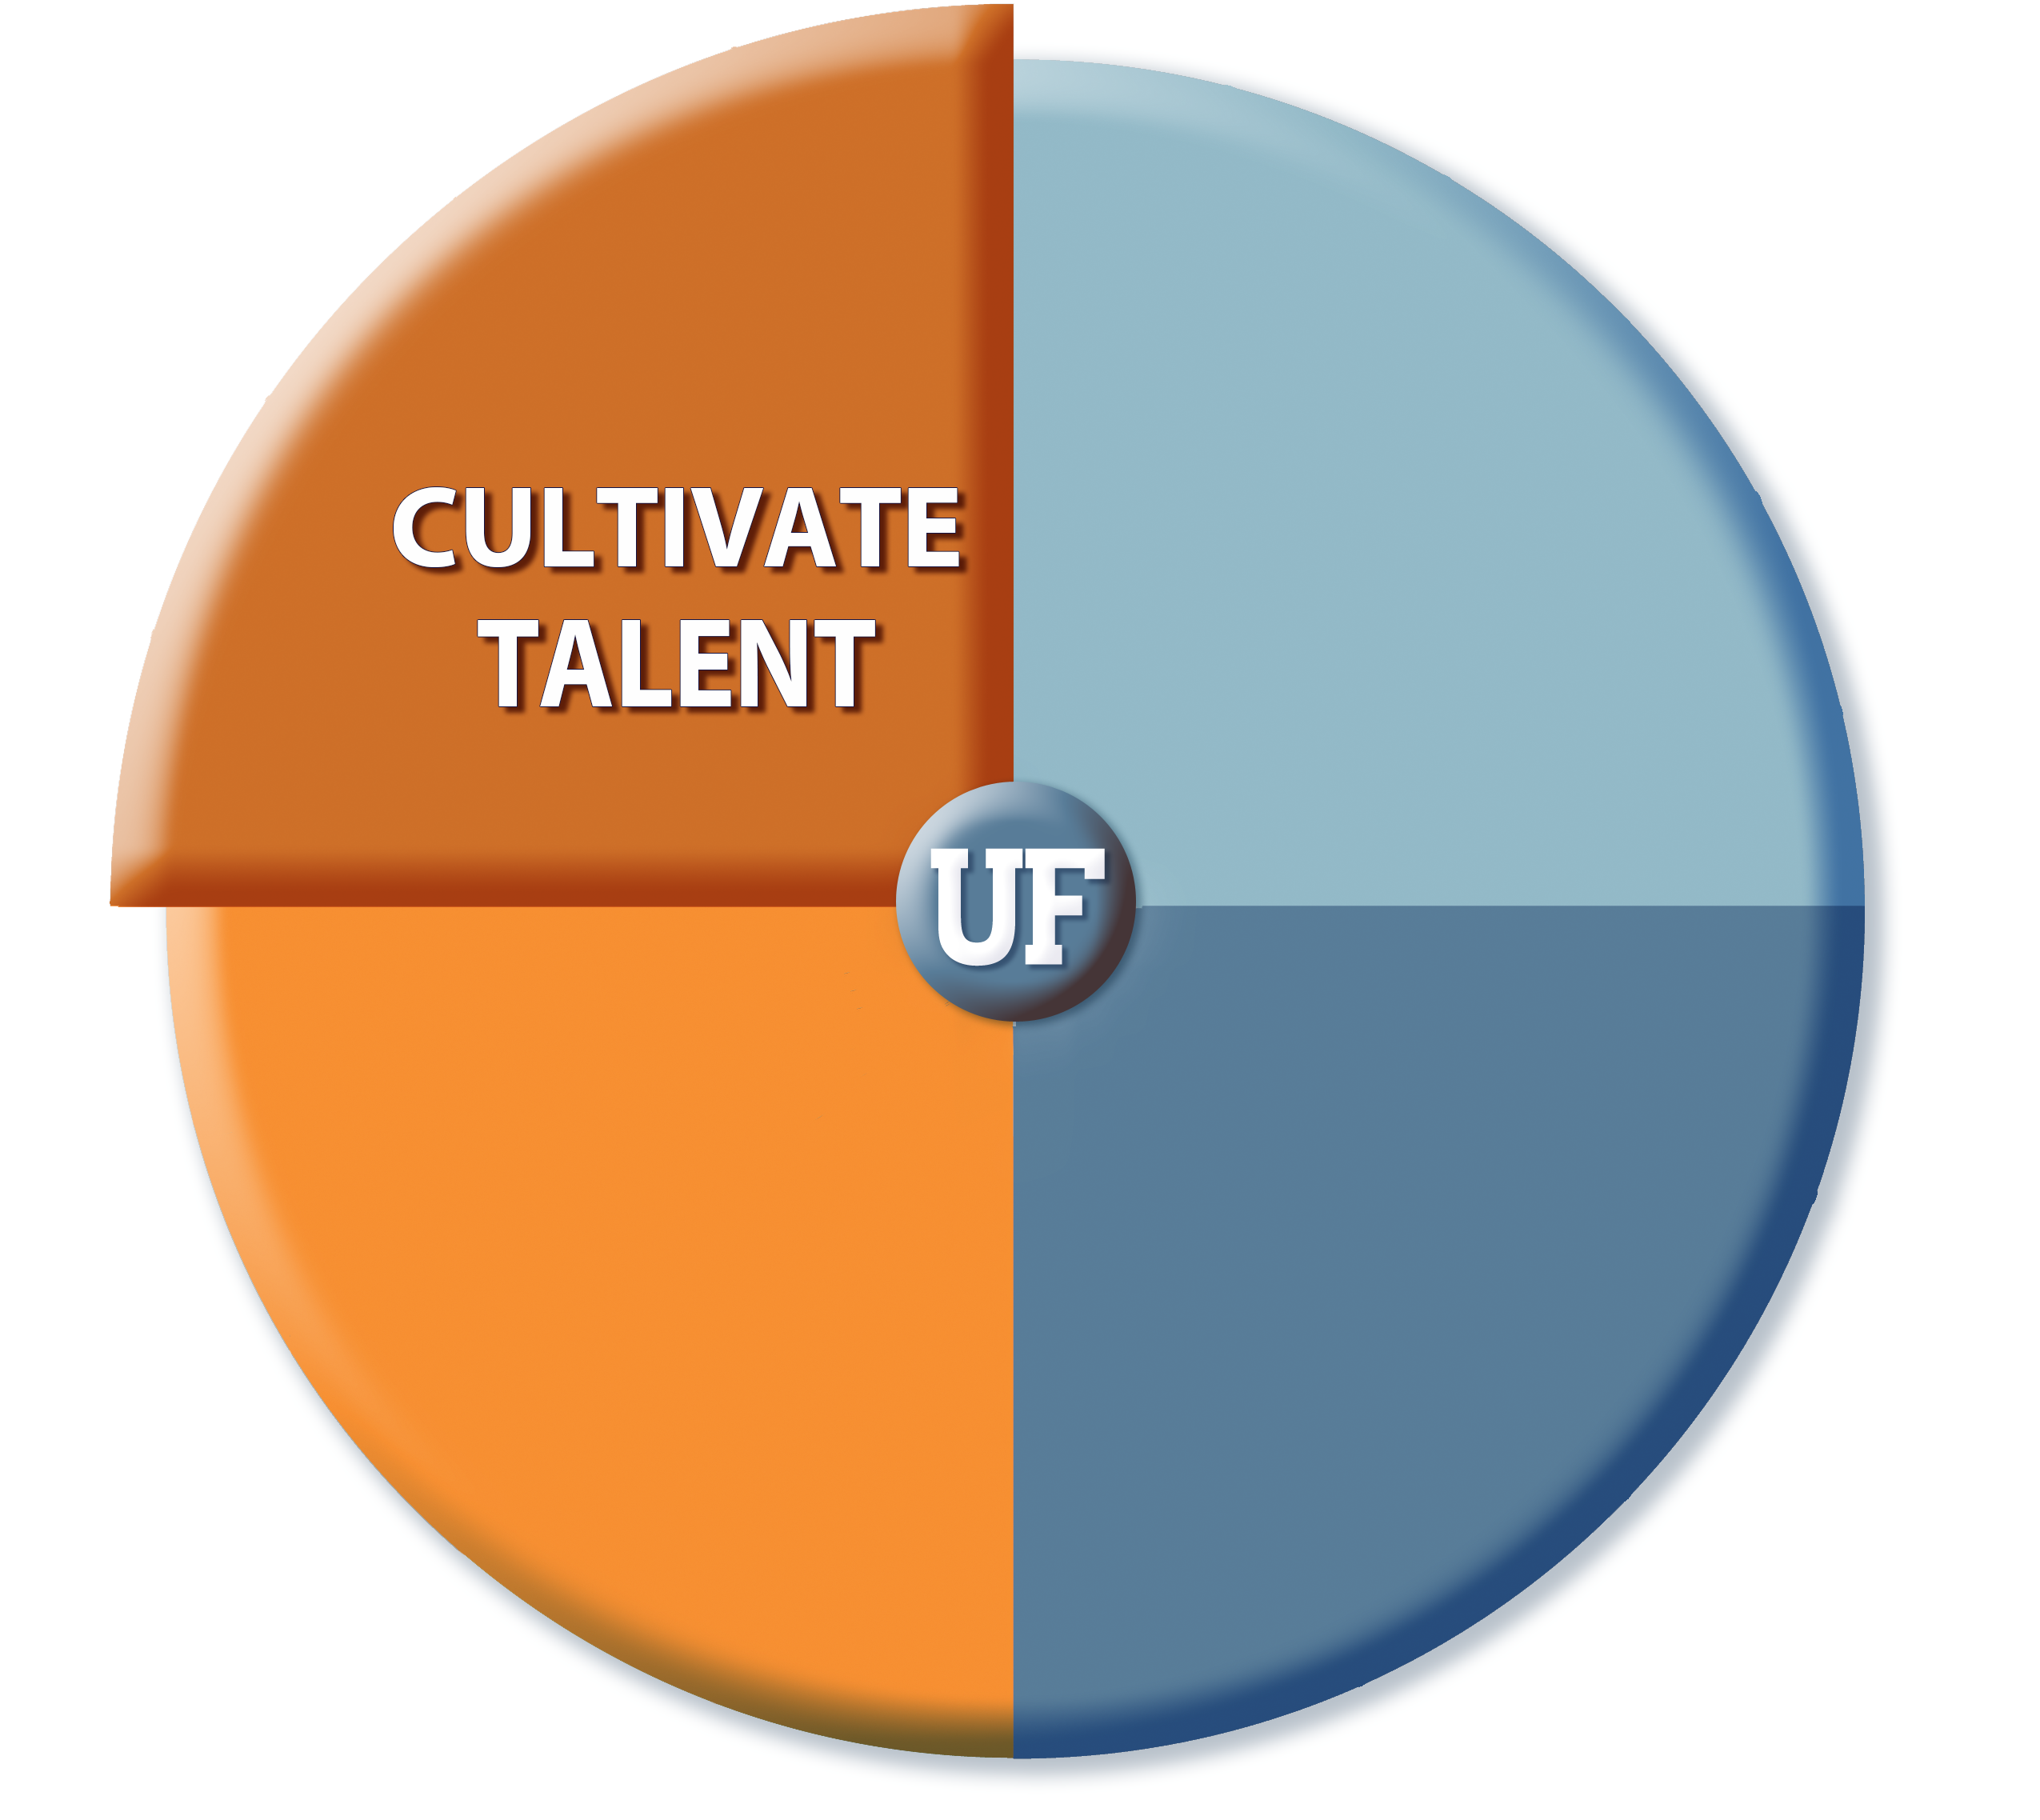 Cultivate Talent